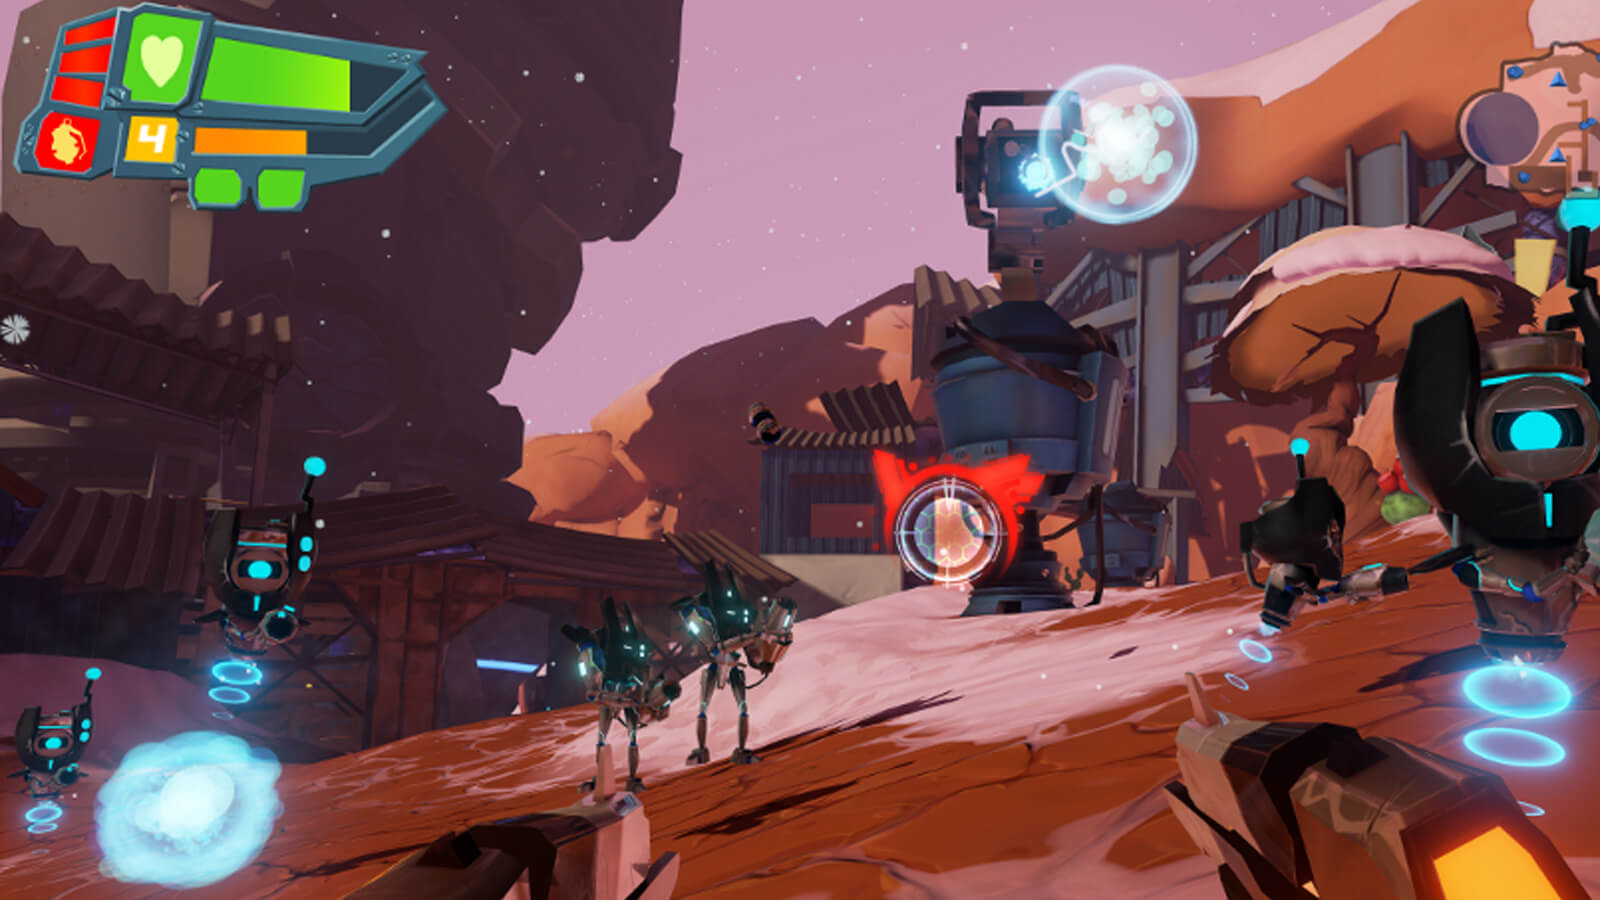 Robots surround the dual-wielding player in a rickety, futuristic landscape.